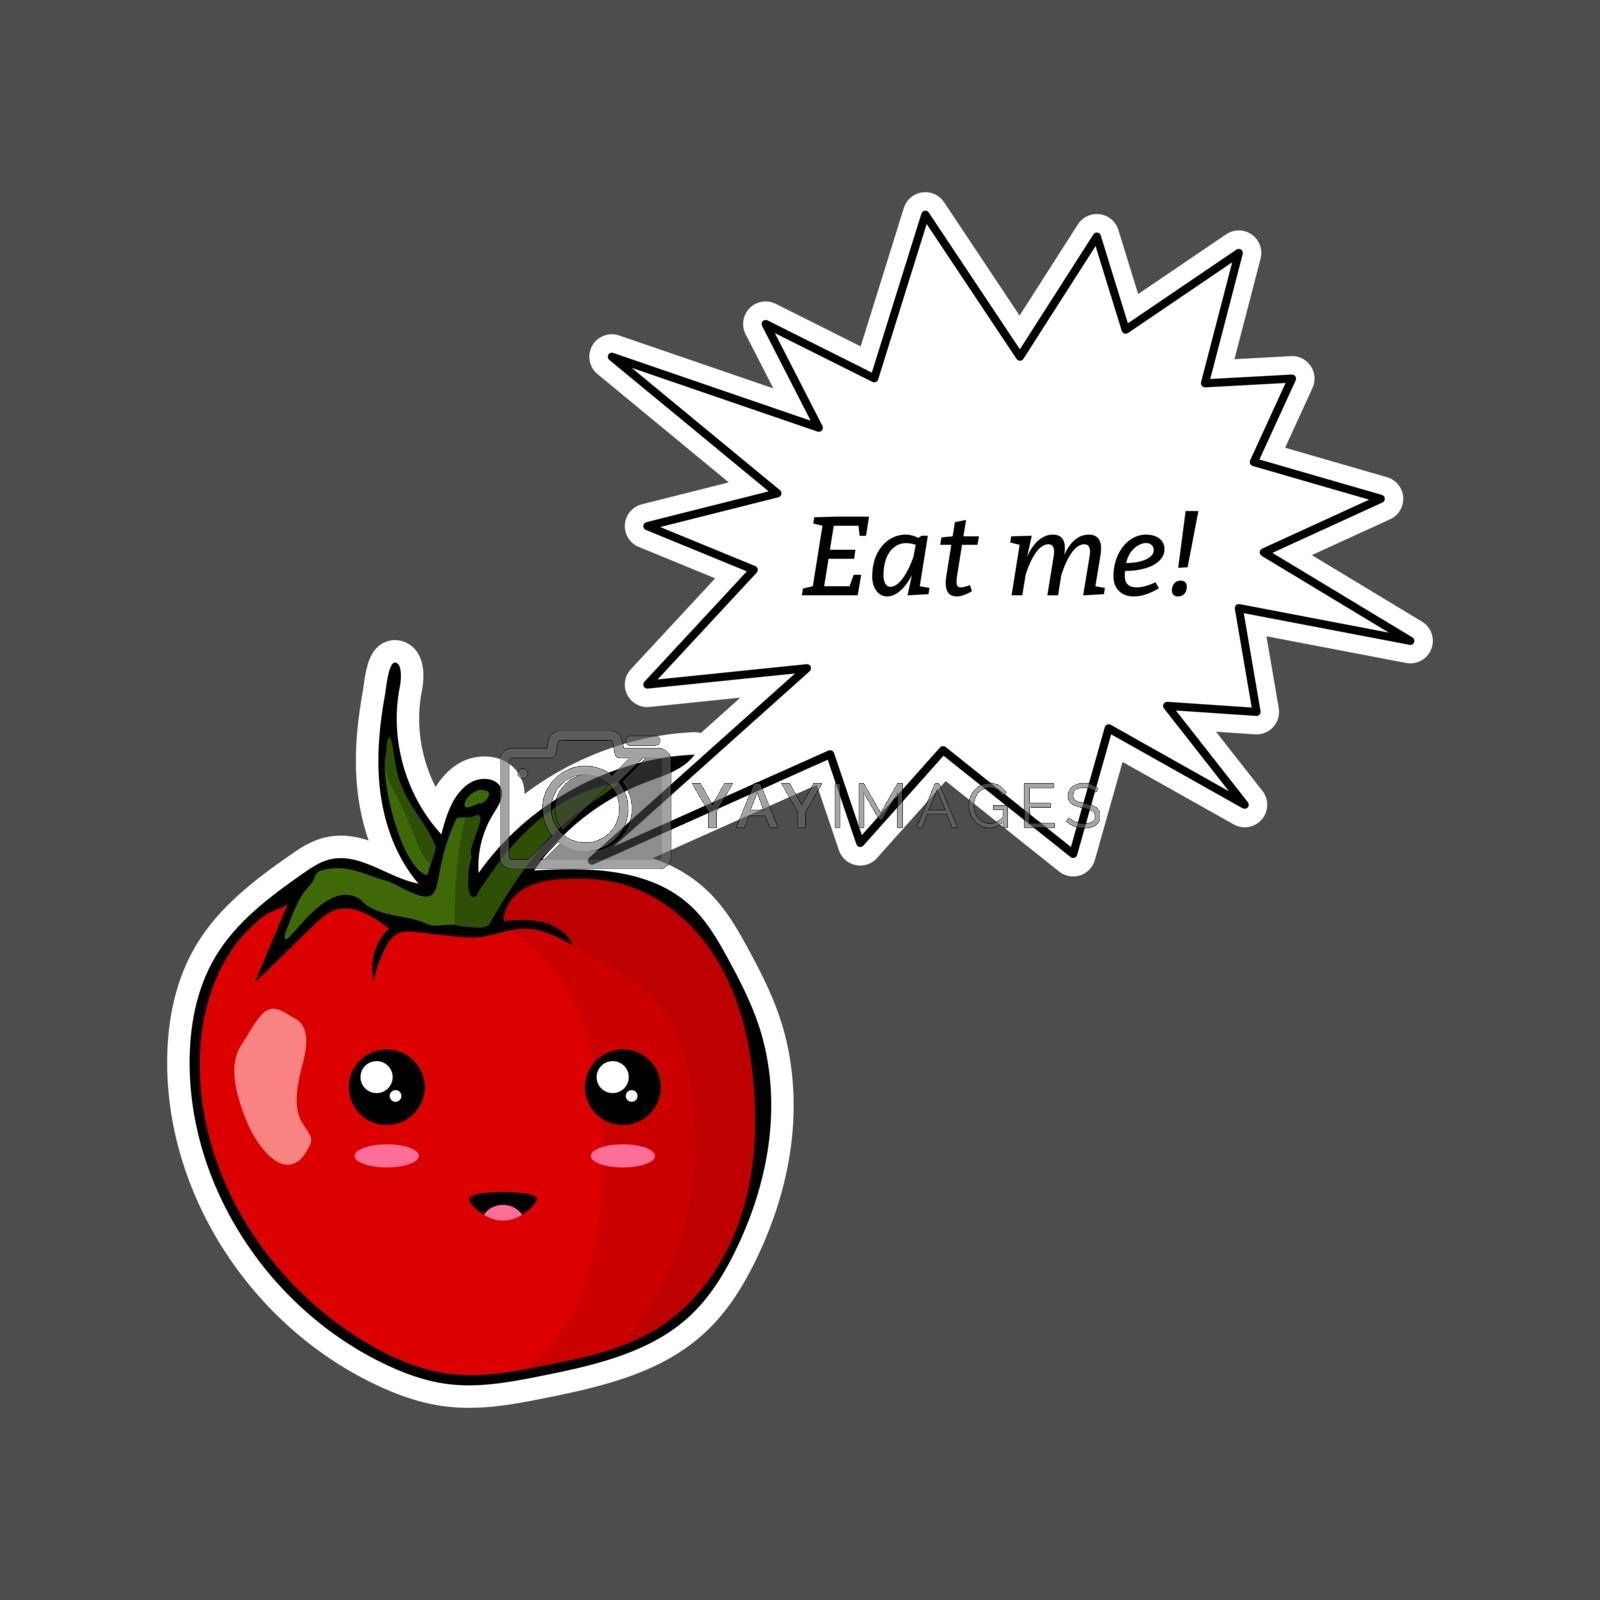 Kawaii sticker colorful cartoon tomato with speech bubble 'Eat me!'. Vector illustration isolated on dark background.